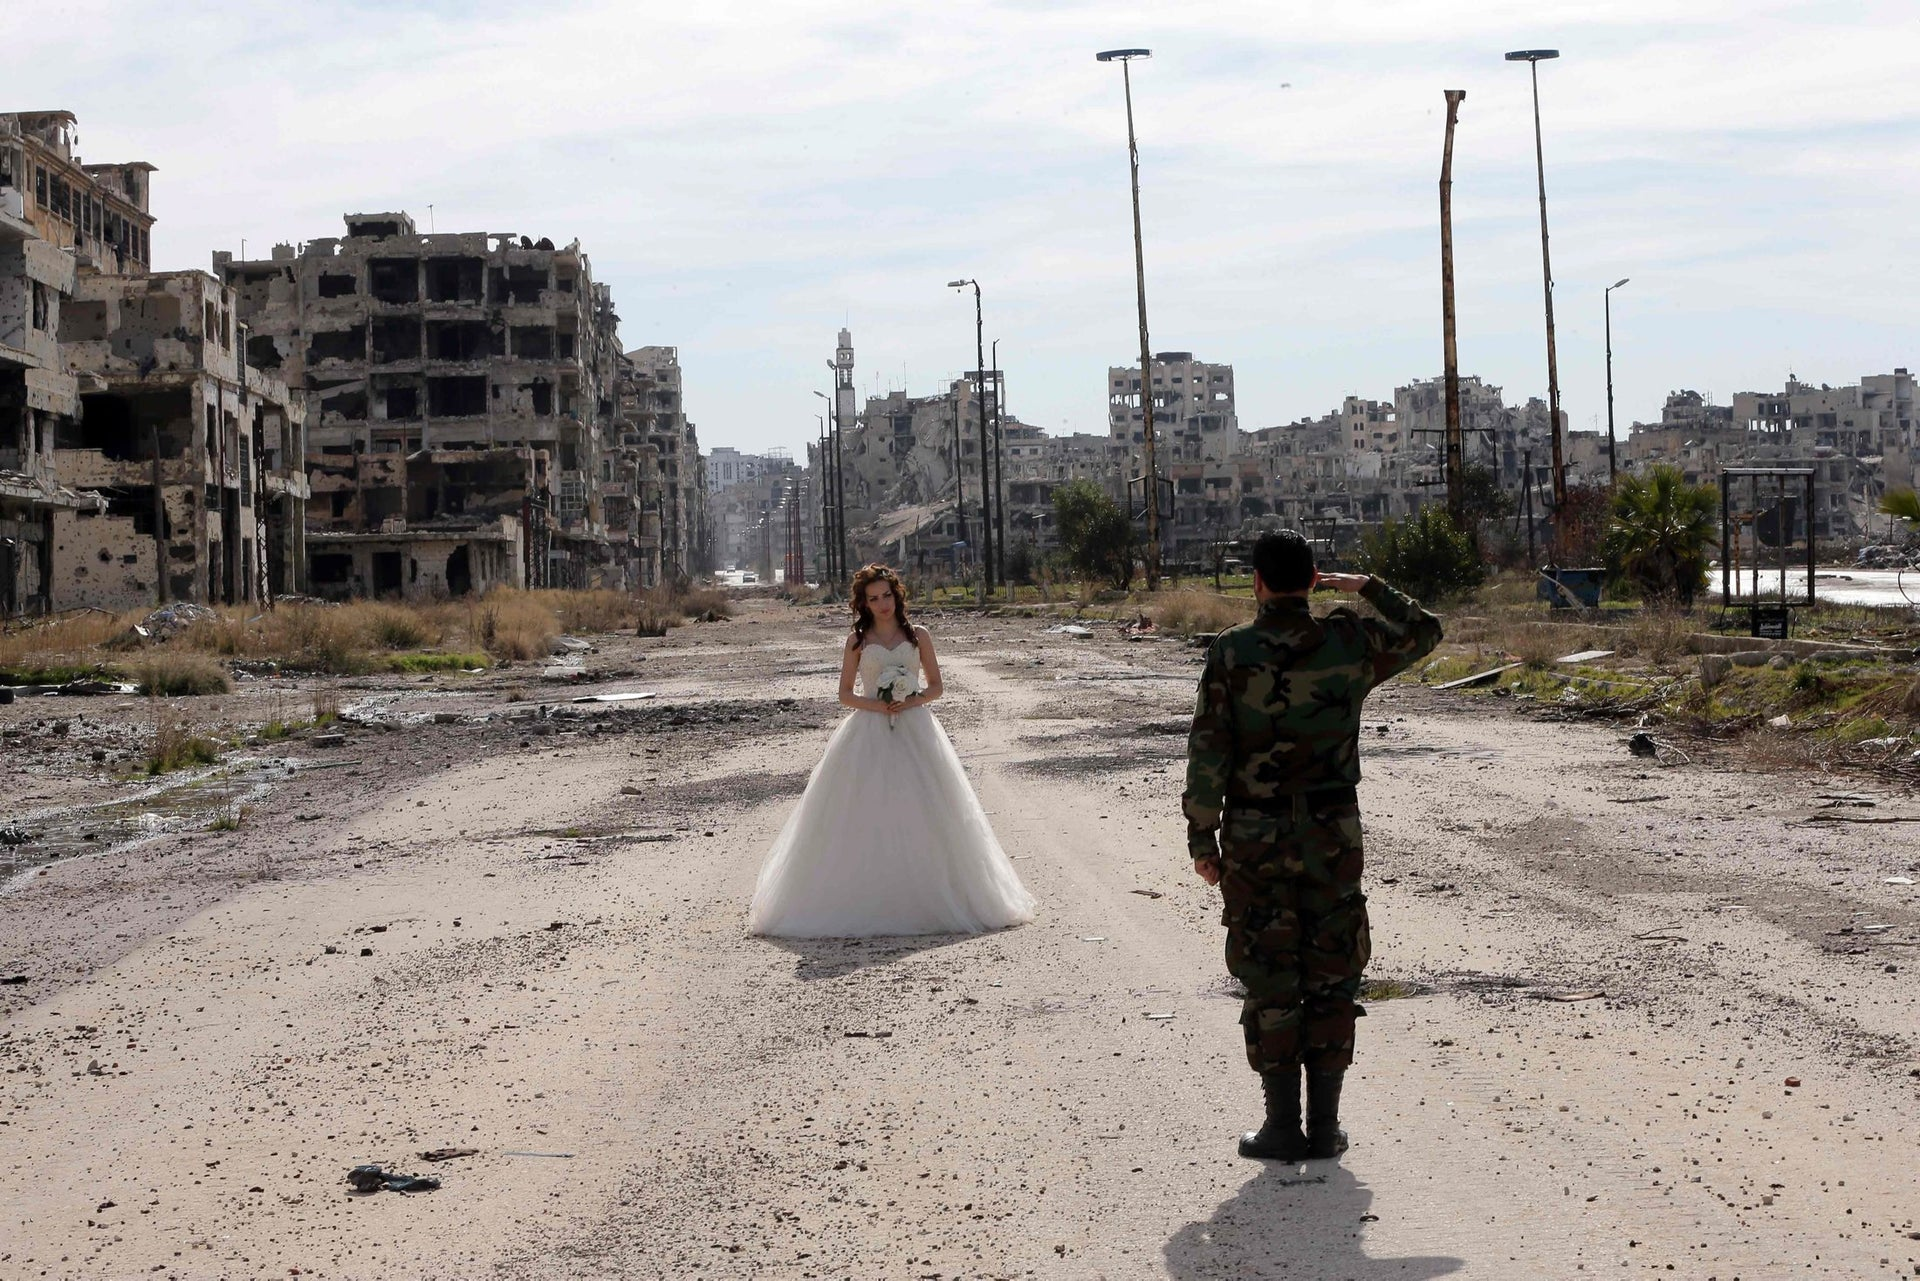 Nada Merhi and Hassan Youssef have their wedding photos taken in a desolate street in the Syrian city of Homs on February 5, 2016.